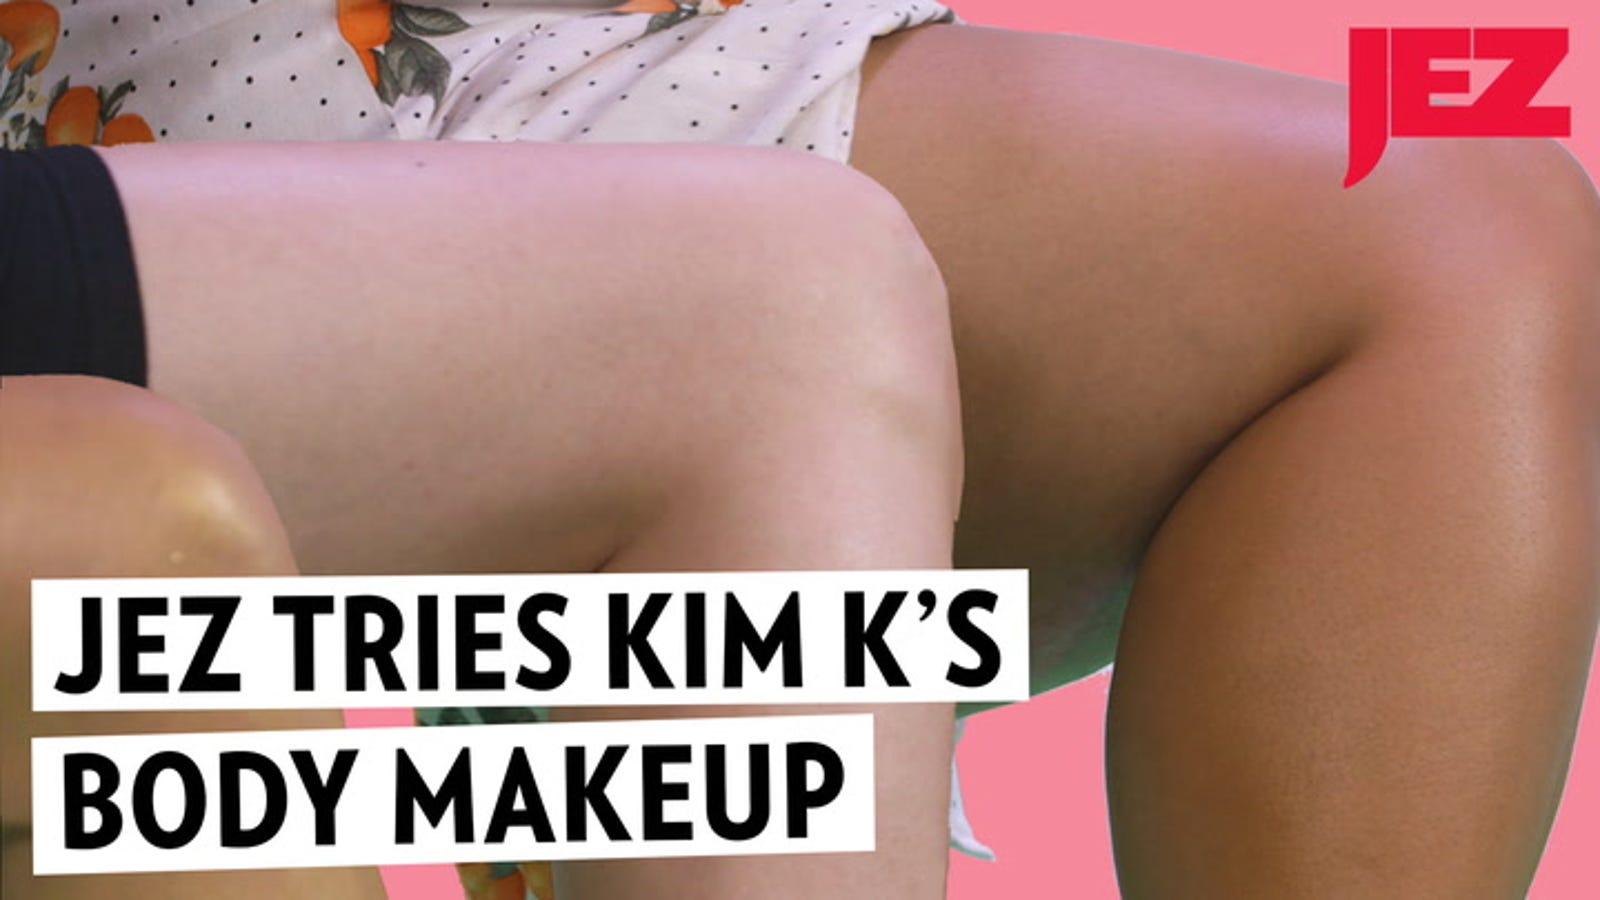 Kim Kardashian's Body Foundation Is Shiny, Grotesque, and One of Us Totally Loved It